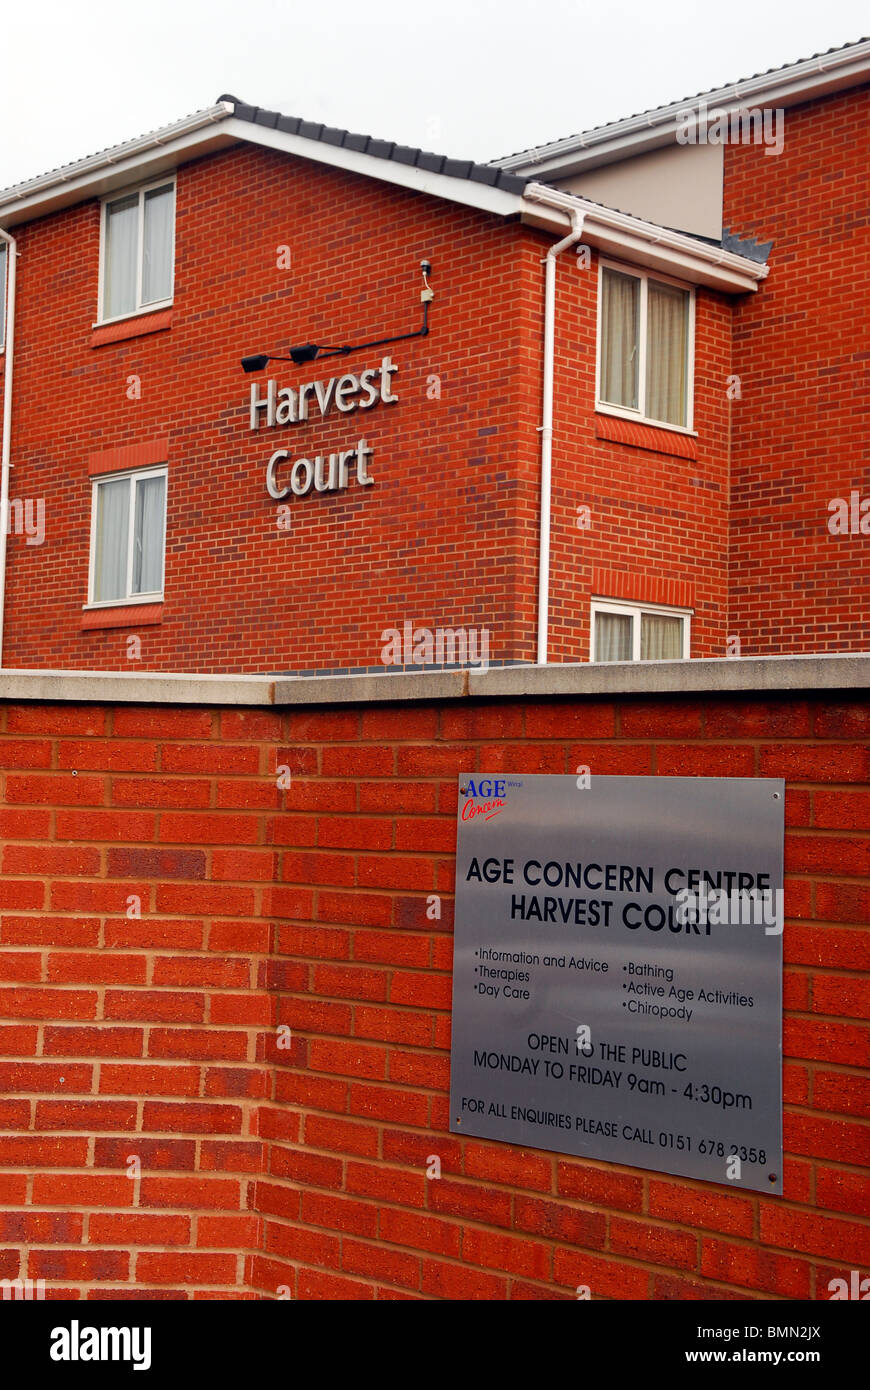 Facade of Age Concern elderly peoples' home, Wirral, UK. - Stock Image